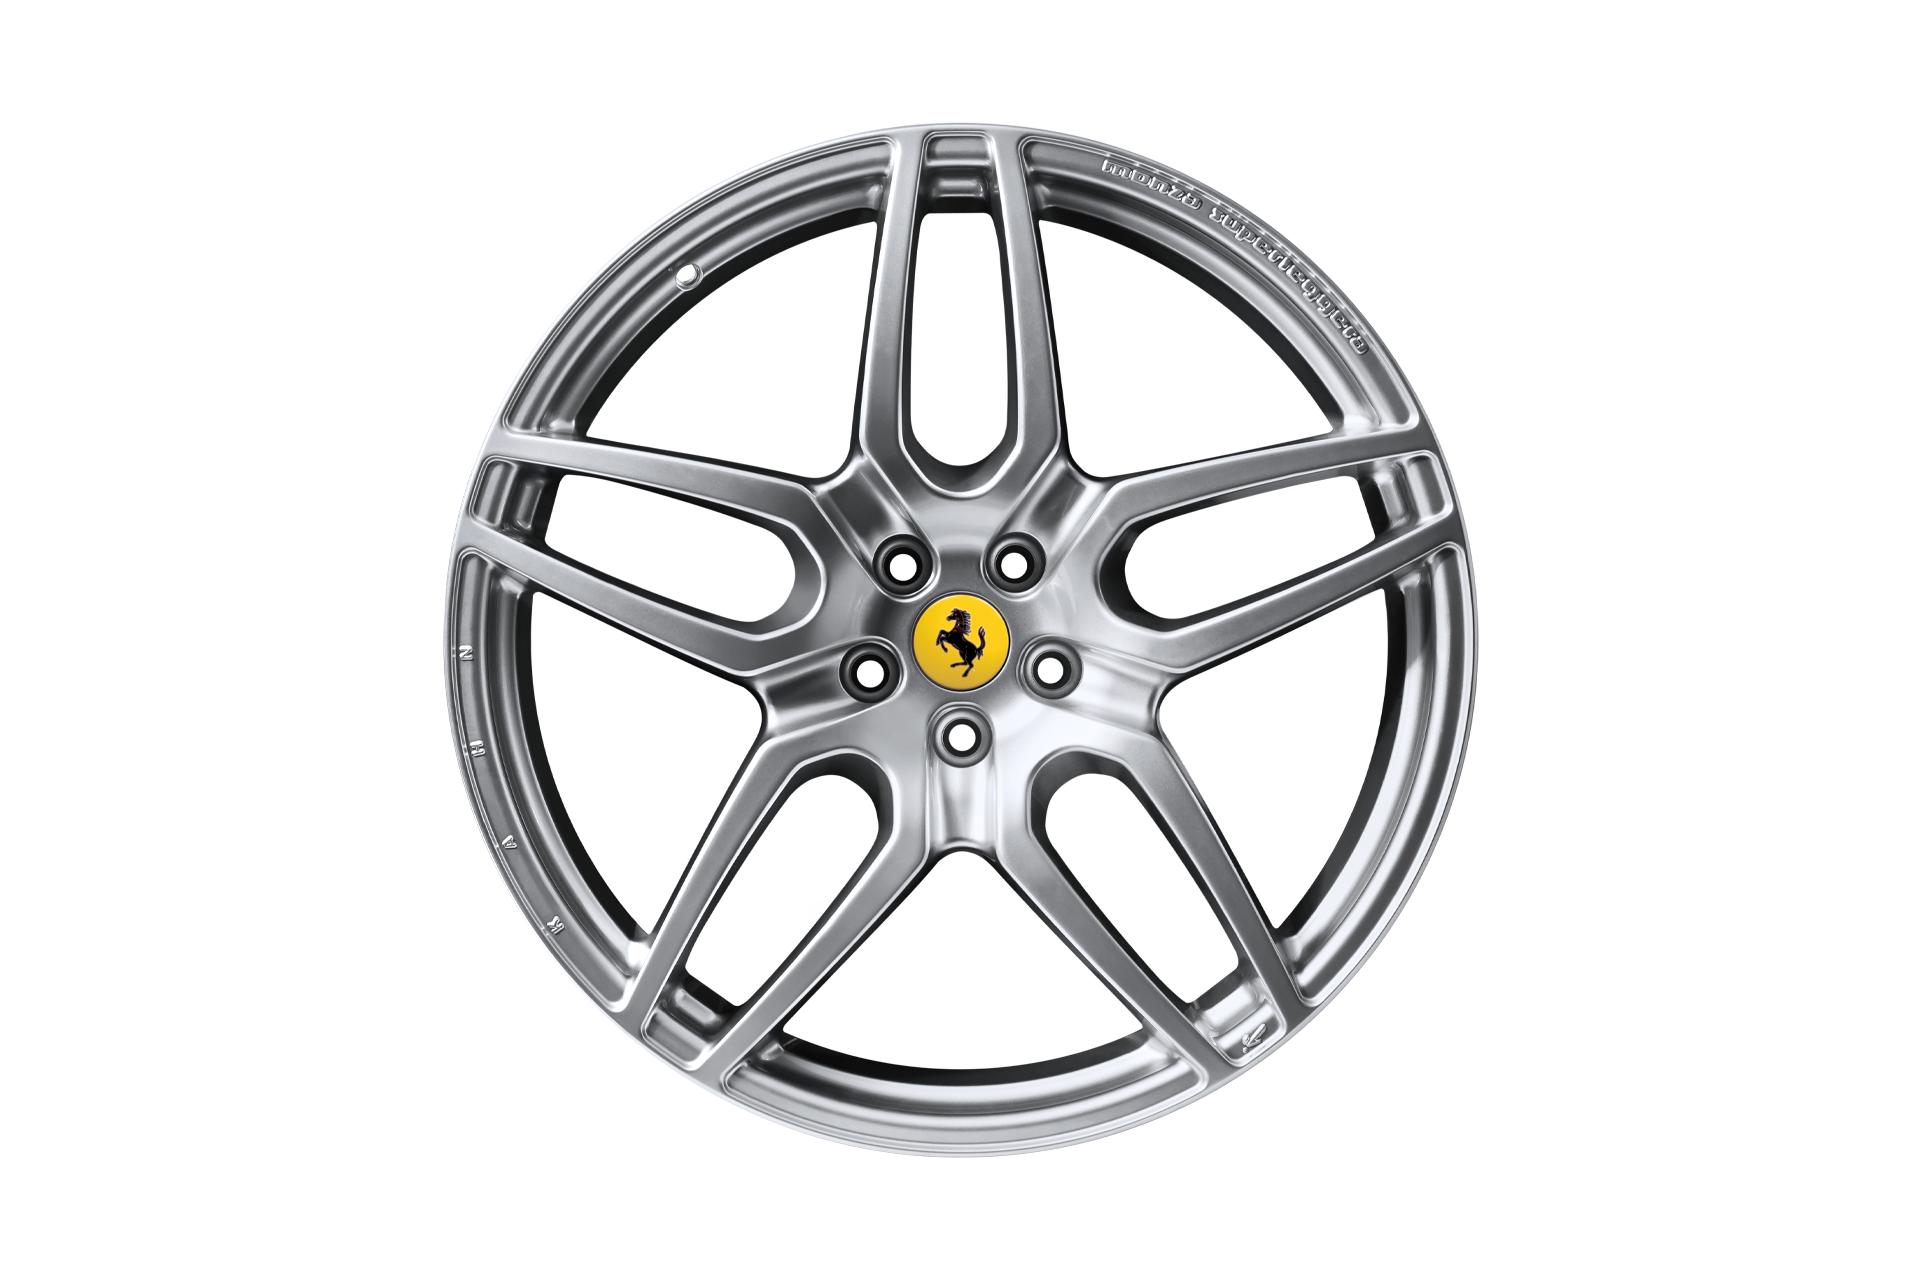 Ferrari California Monza Superleggera Light Alloy Wheels by Kahn - Image 4118